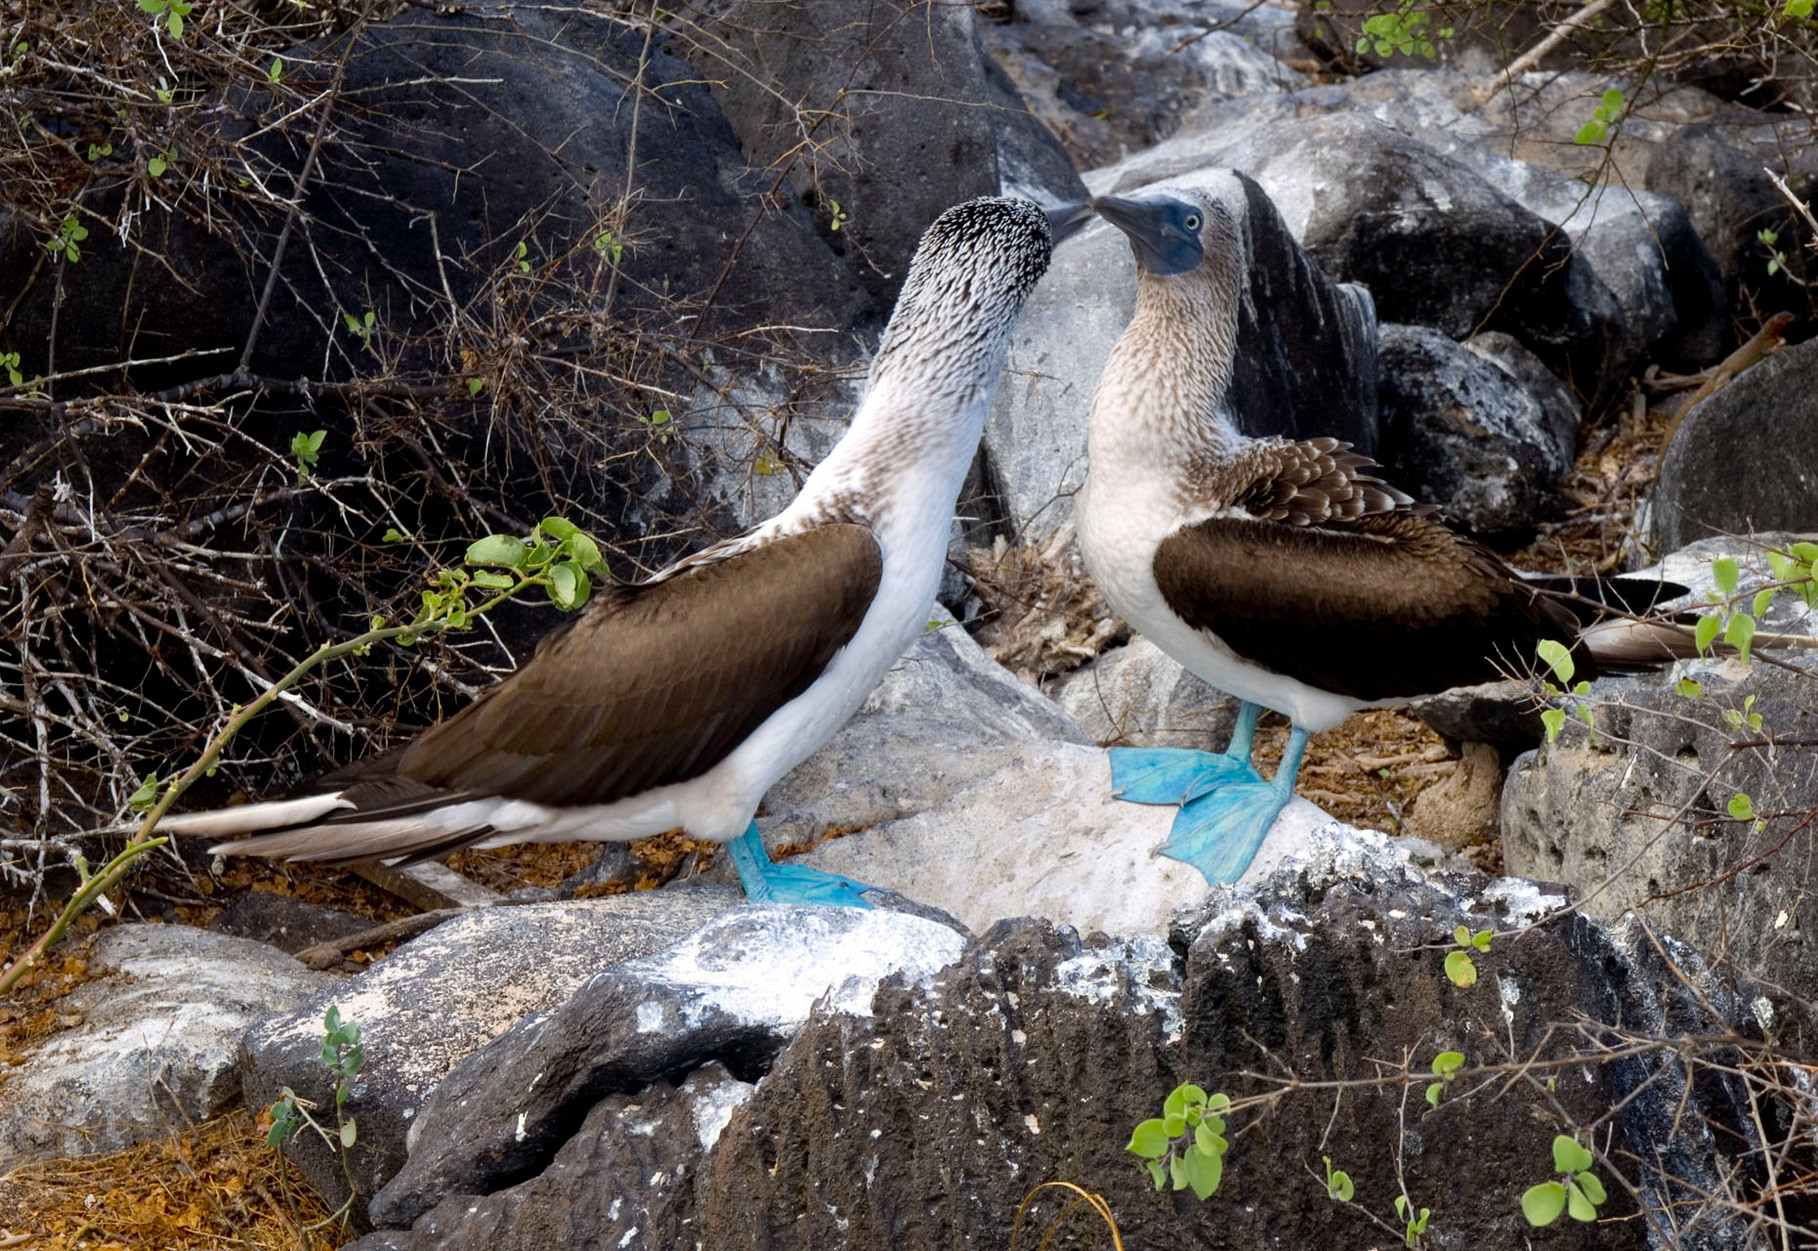 Blue footed booby [Galapagos, Ecuador, 2009]